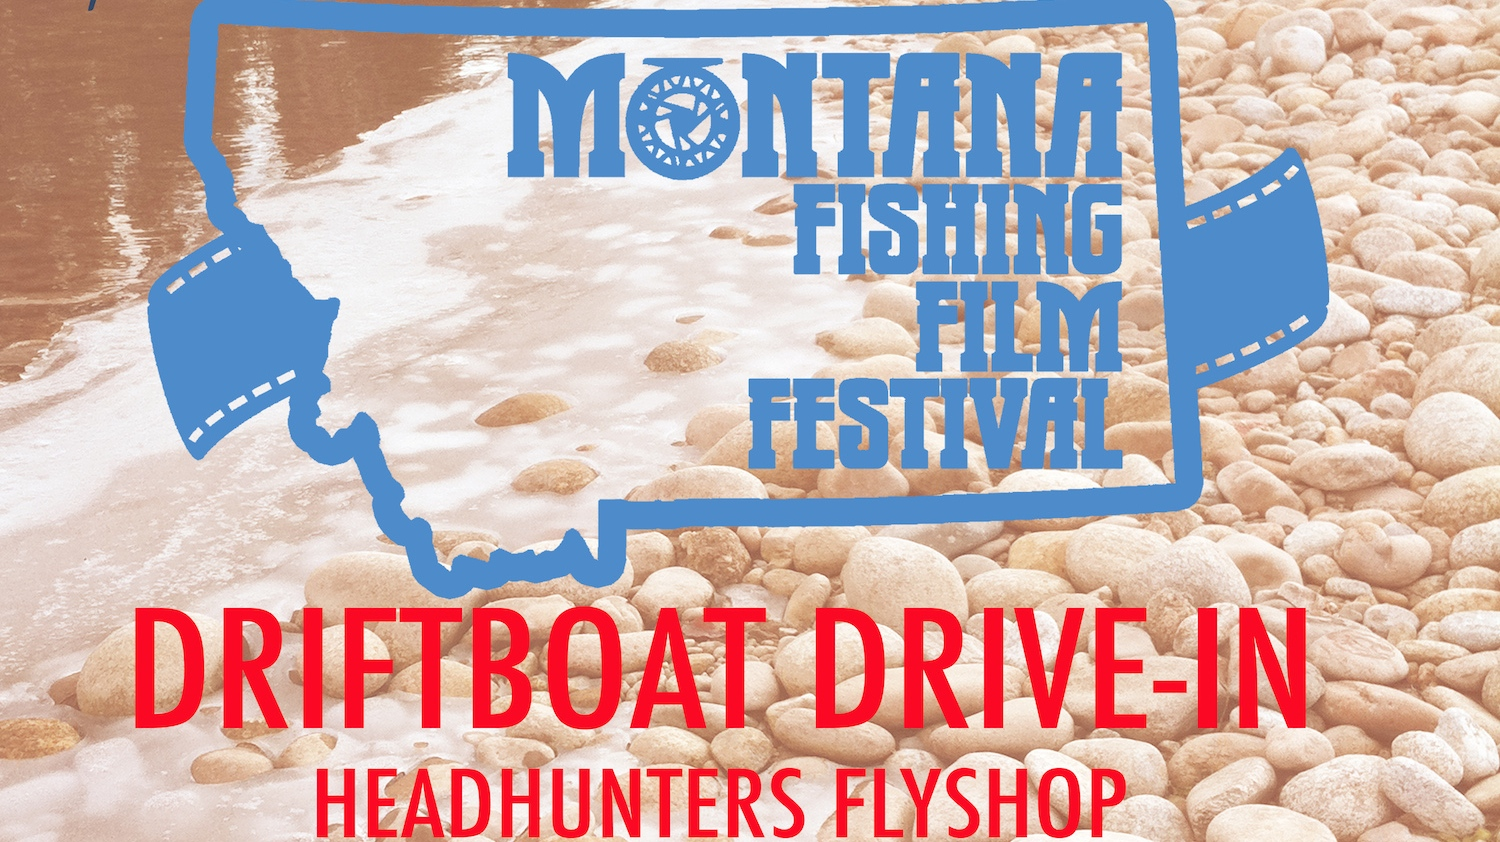 Drift Boat Drive-In Headhunters Fly Shop Montana Fishing Film Festival Friday May 15th